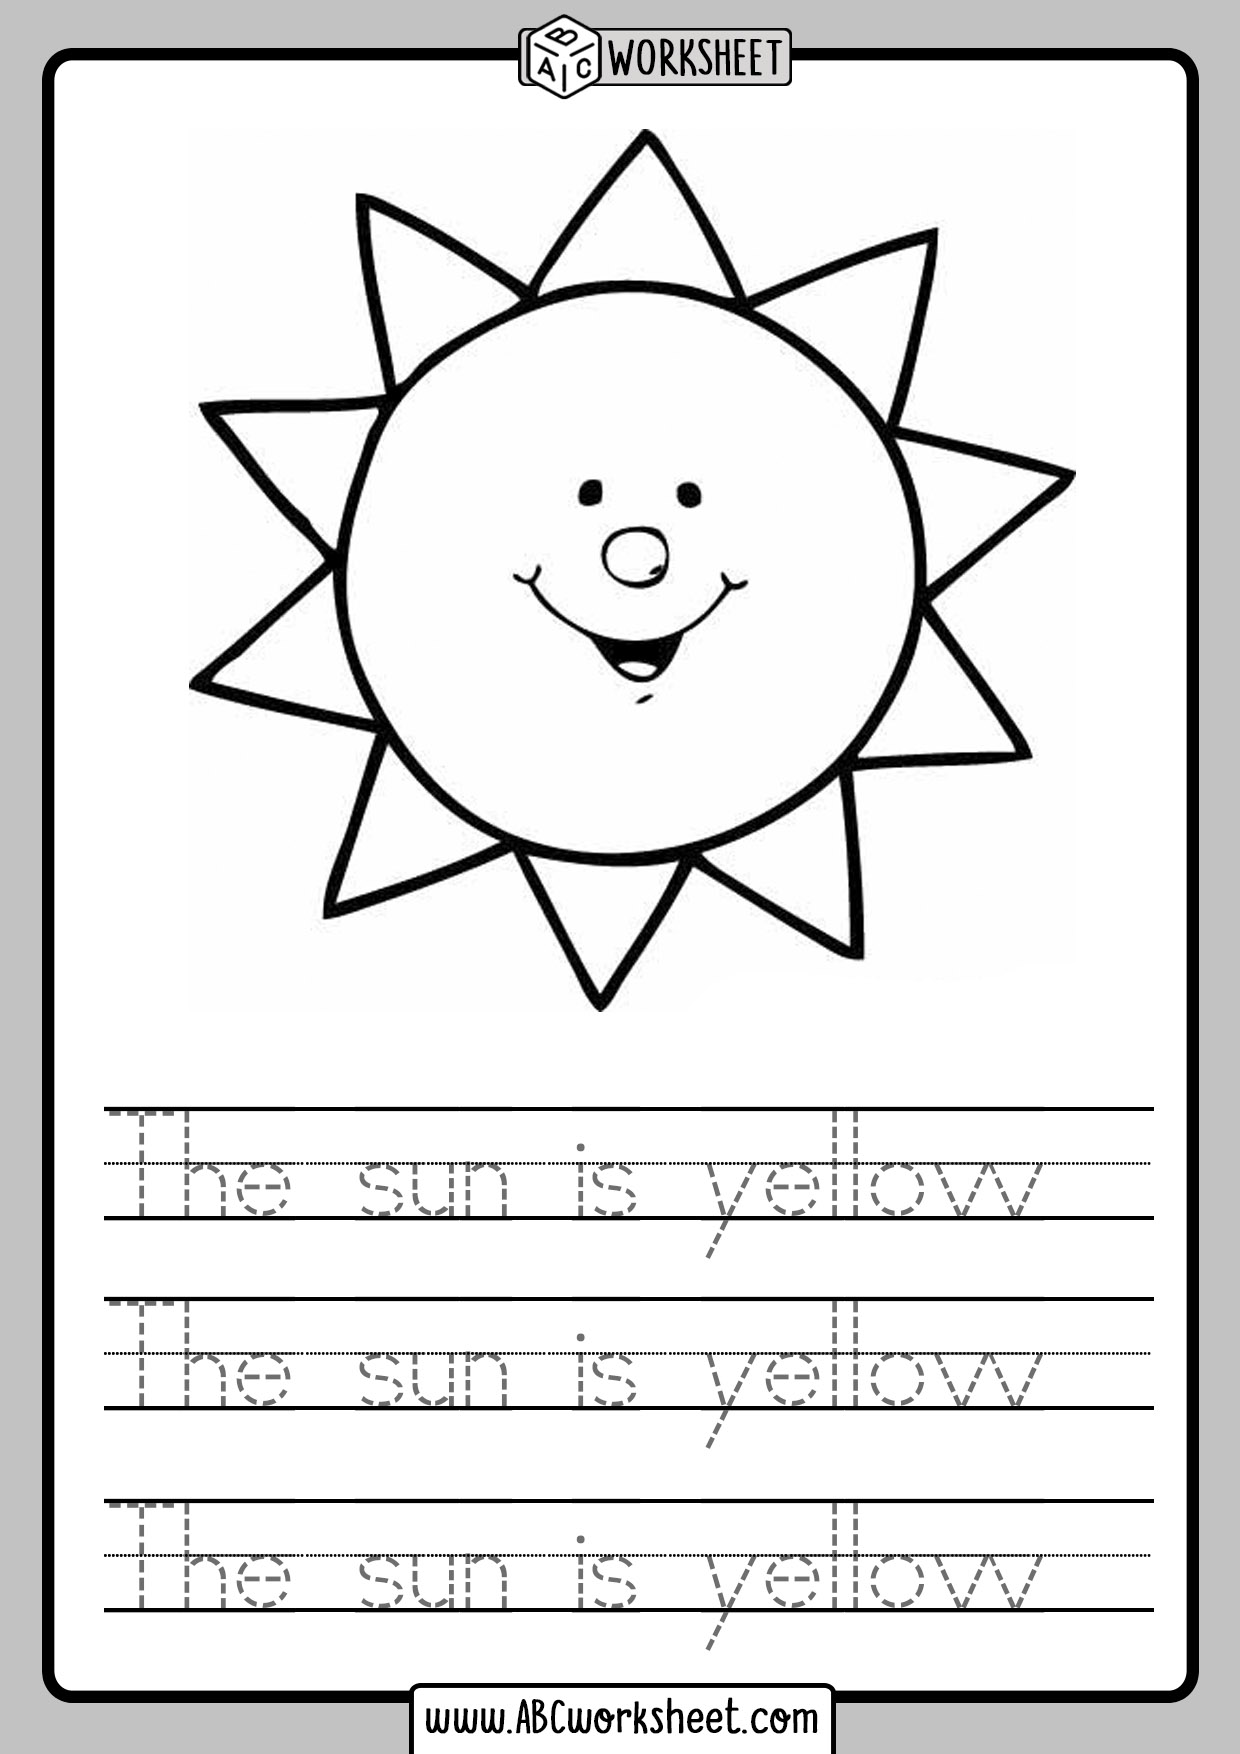 Read And Trace Worksheets